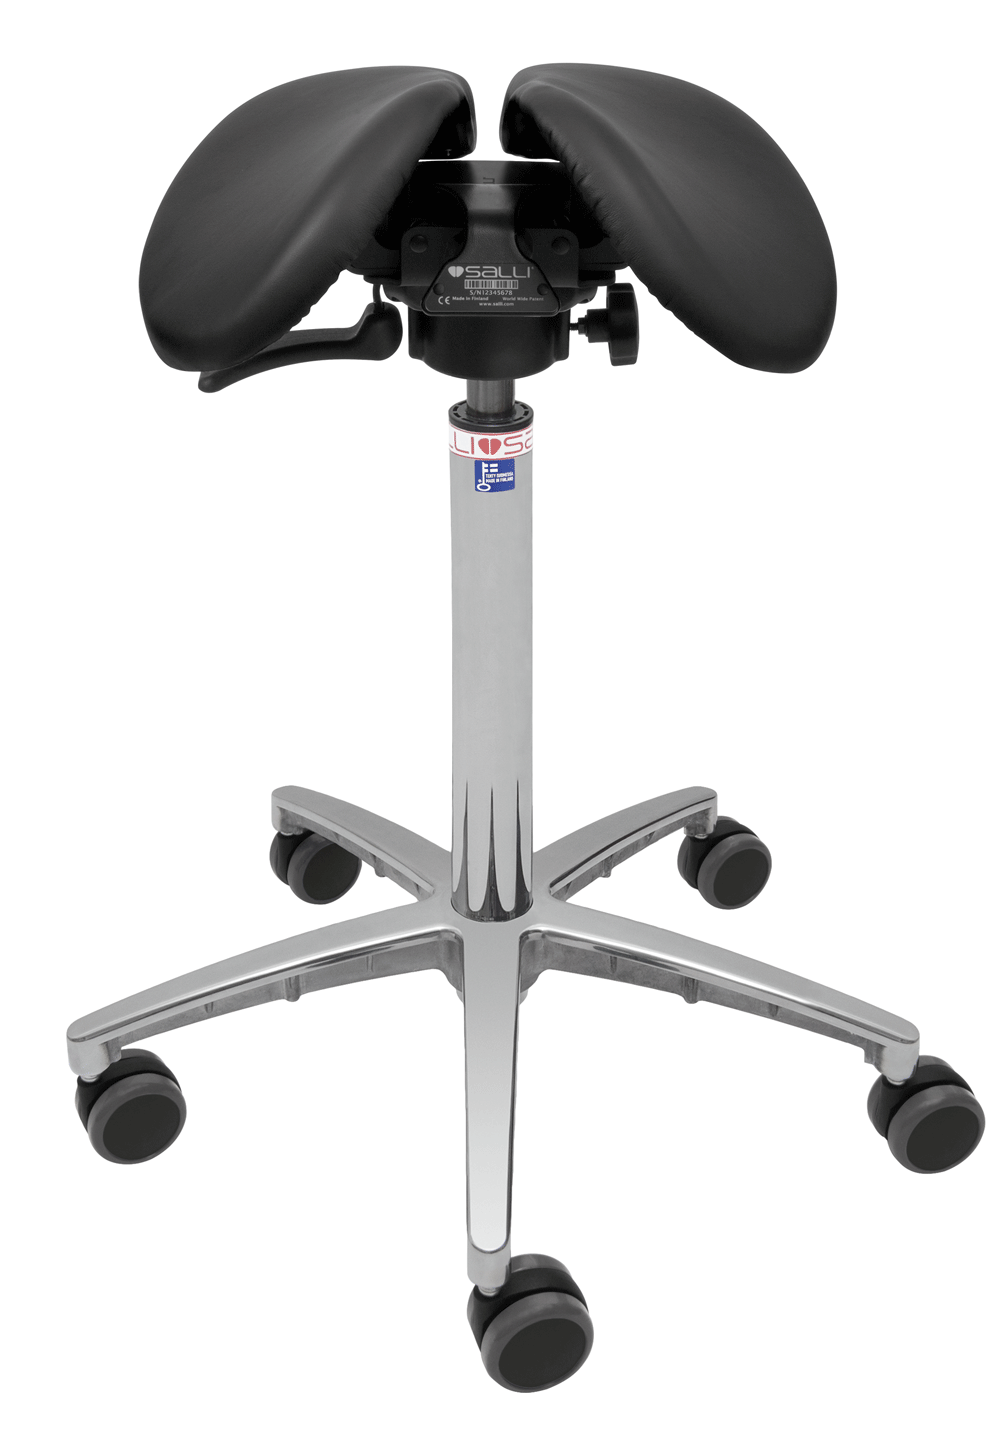 Salli Swingfit Stool- available to order from DMI - Ireland's Leading Professional Dental Supplier - ROI: 01 427 3700 | NI: 028 9260 1000